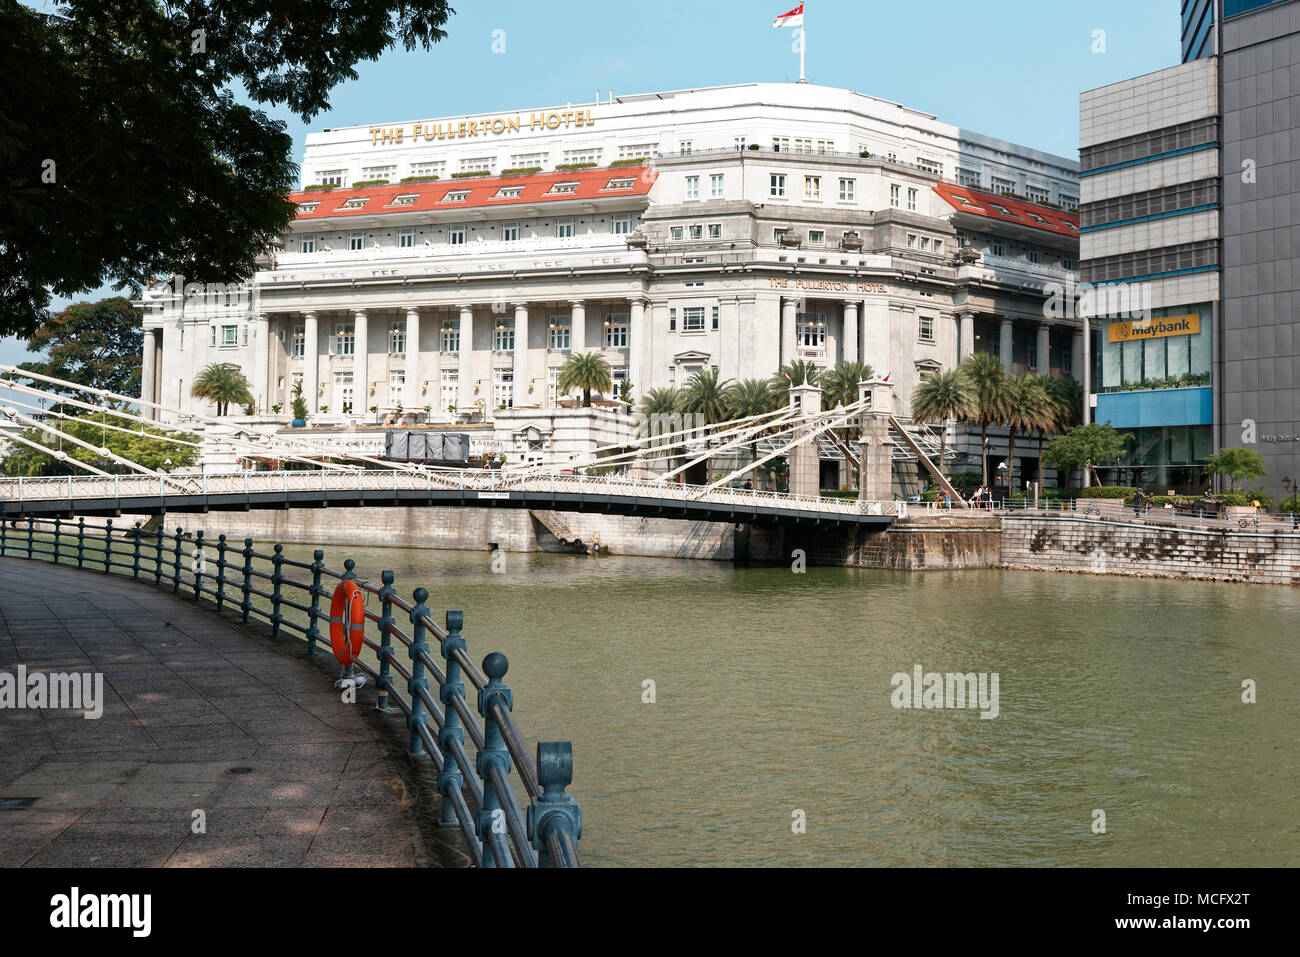 Cavenagh suspension bridge over the Singapore River and Fullerton hotel in the background. - Stock Image